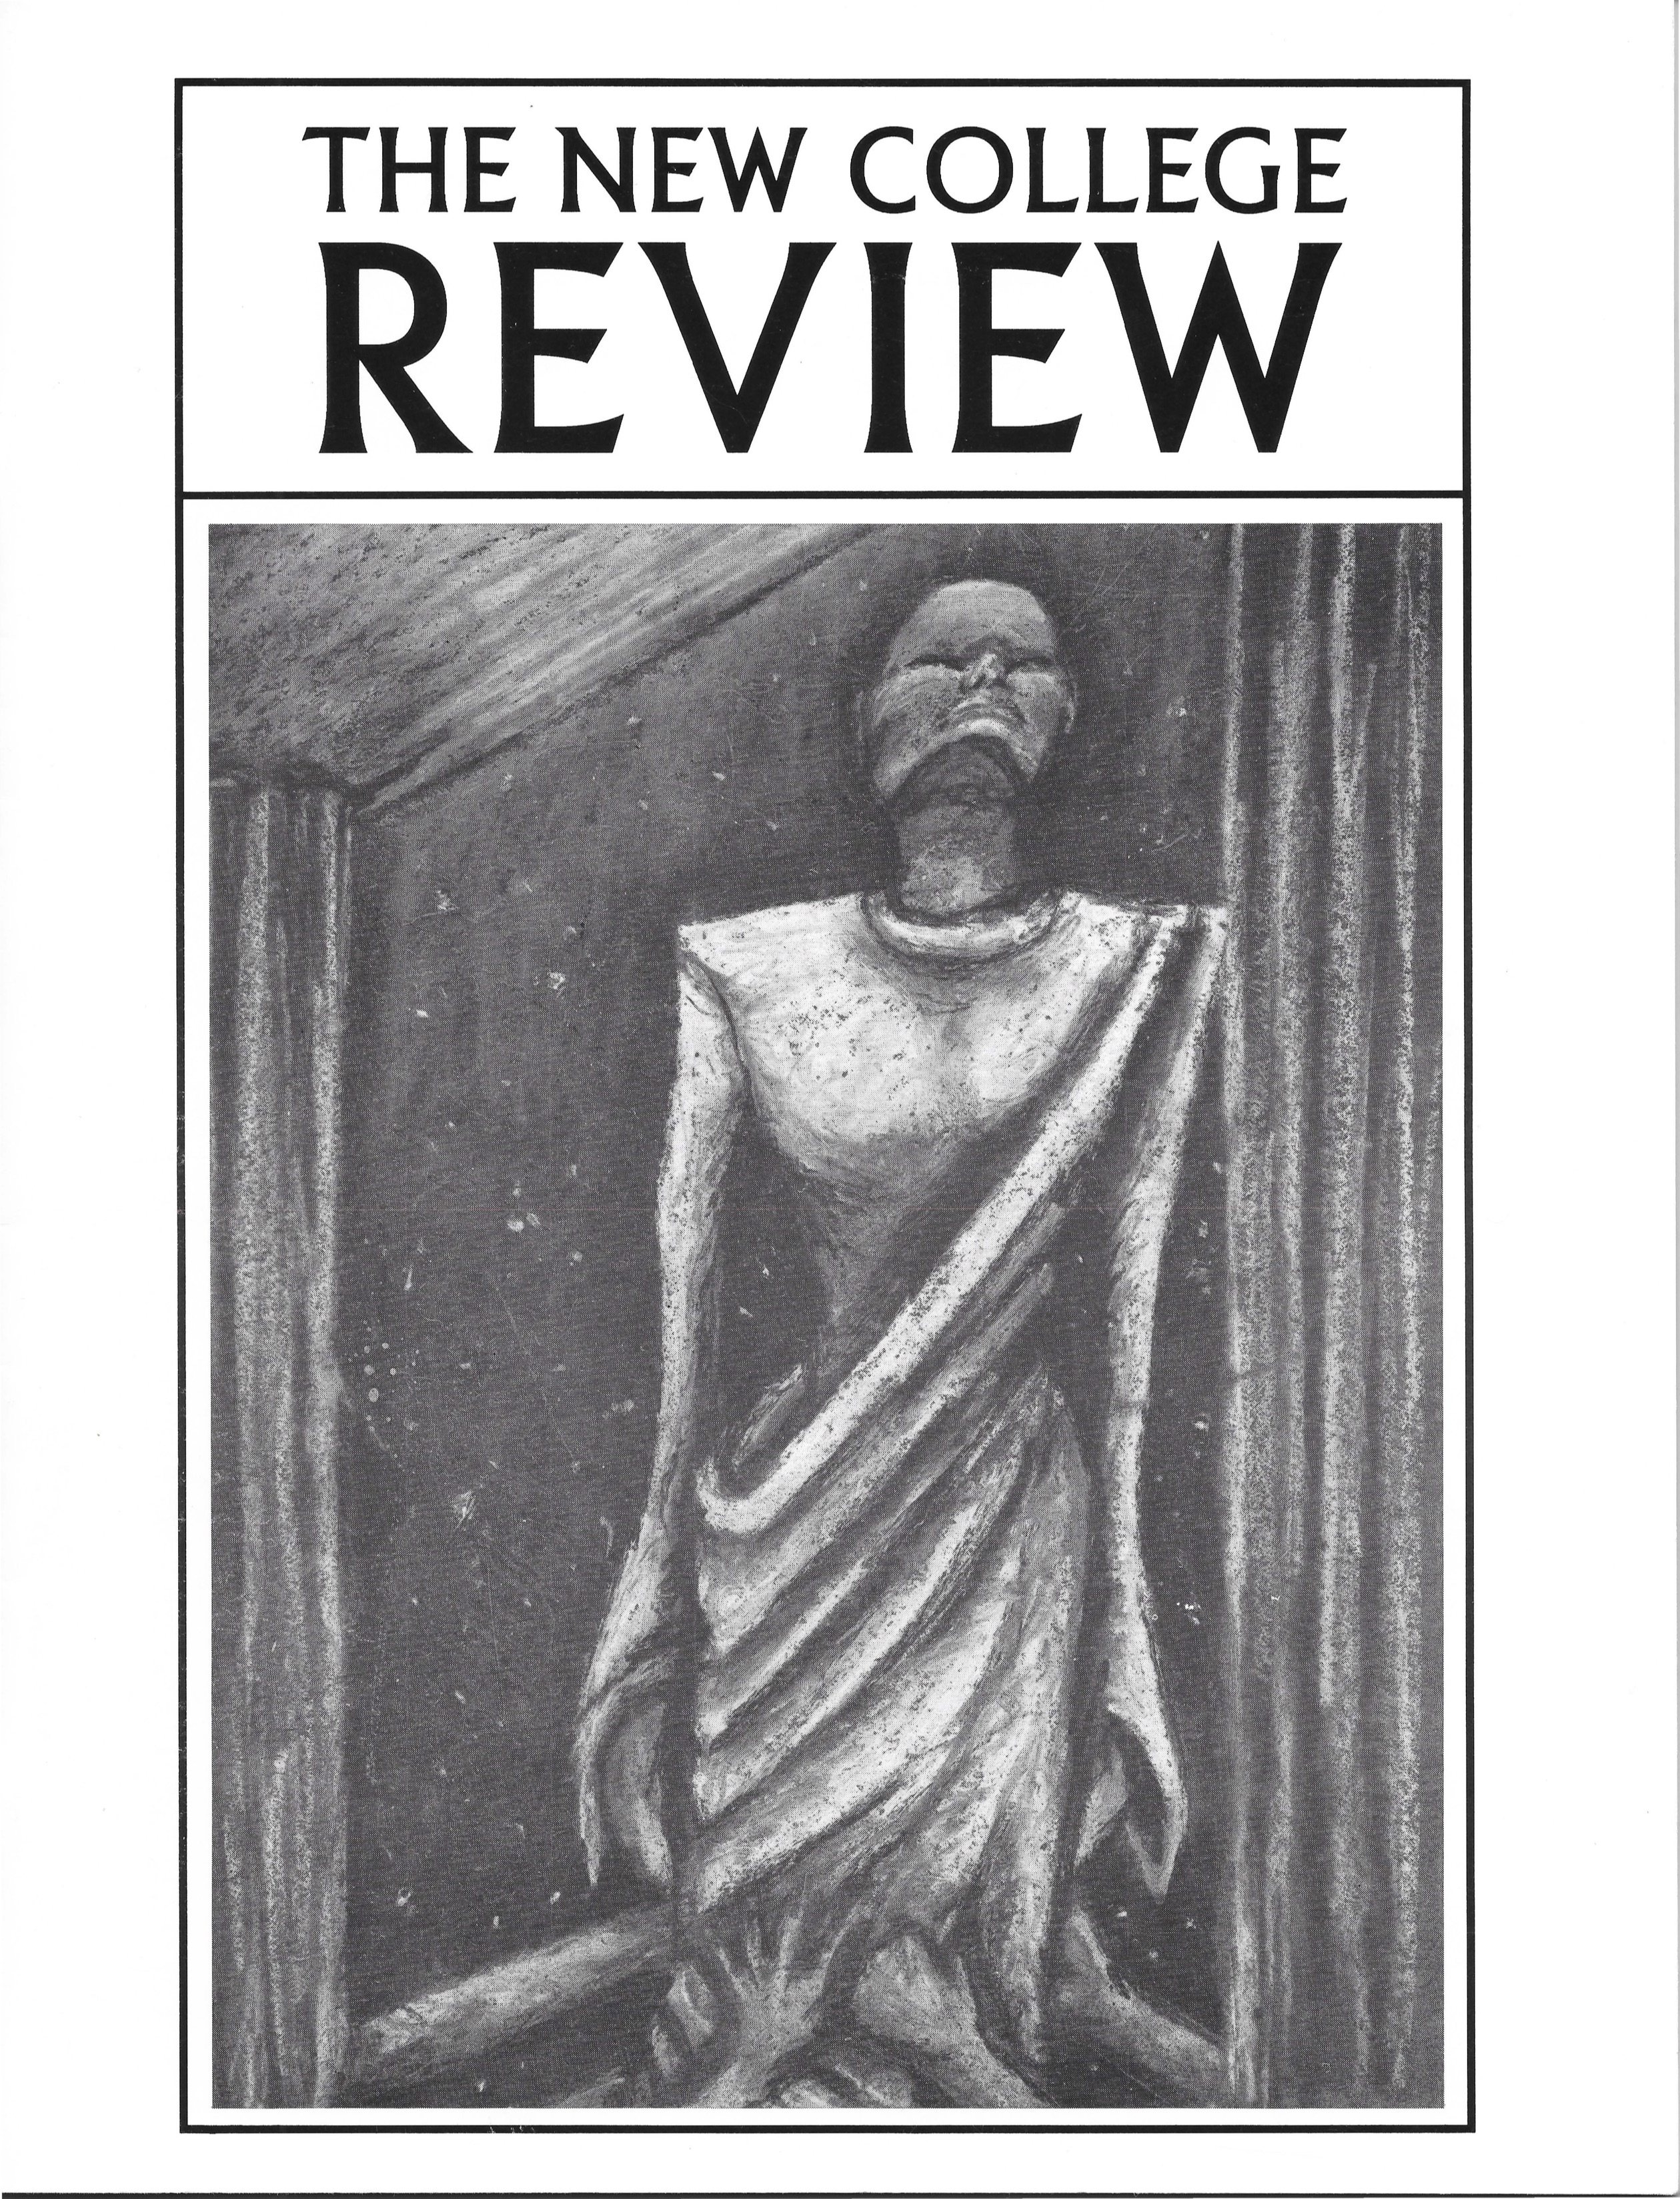 Cover of The New College Review, 1997 issue